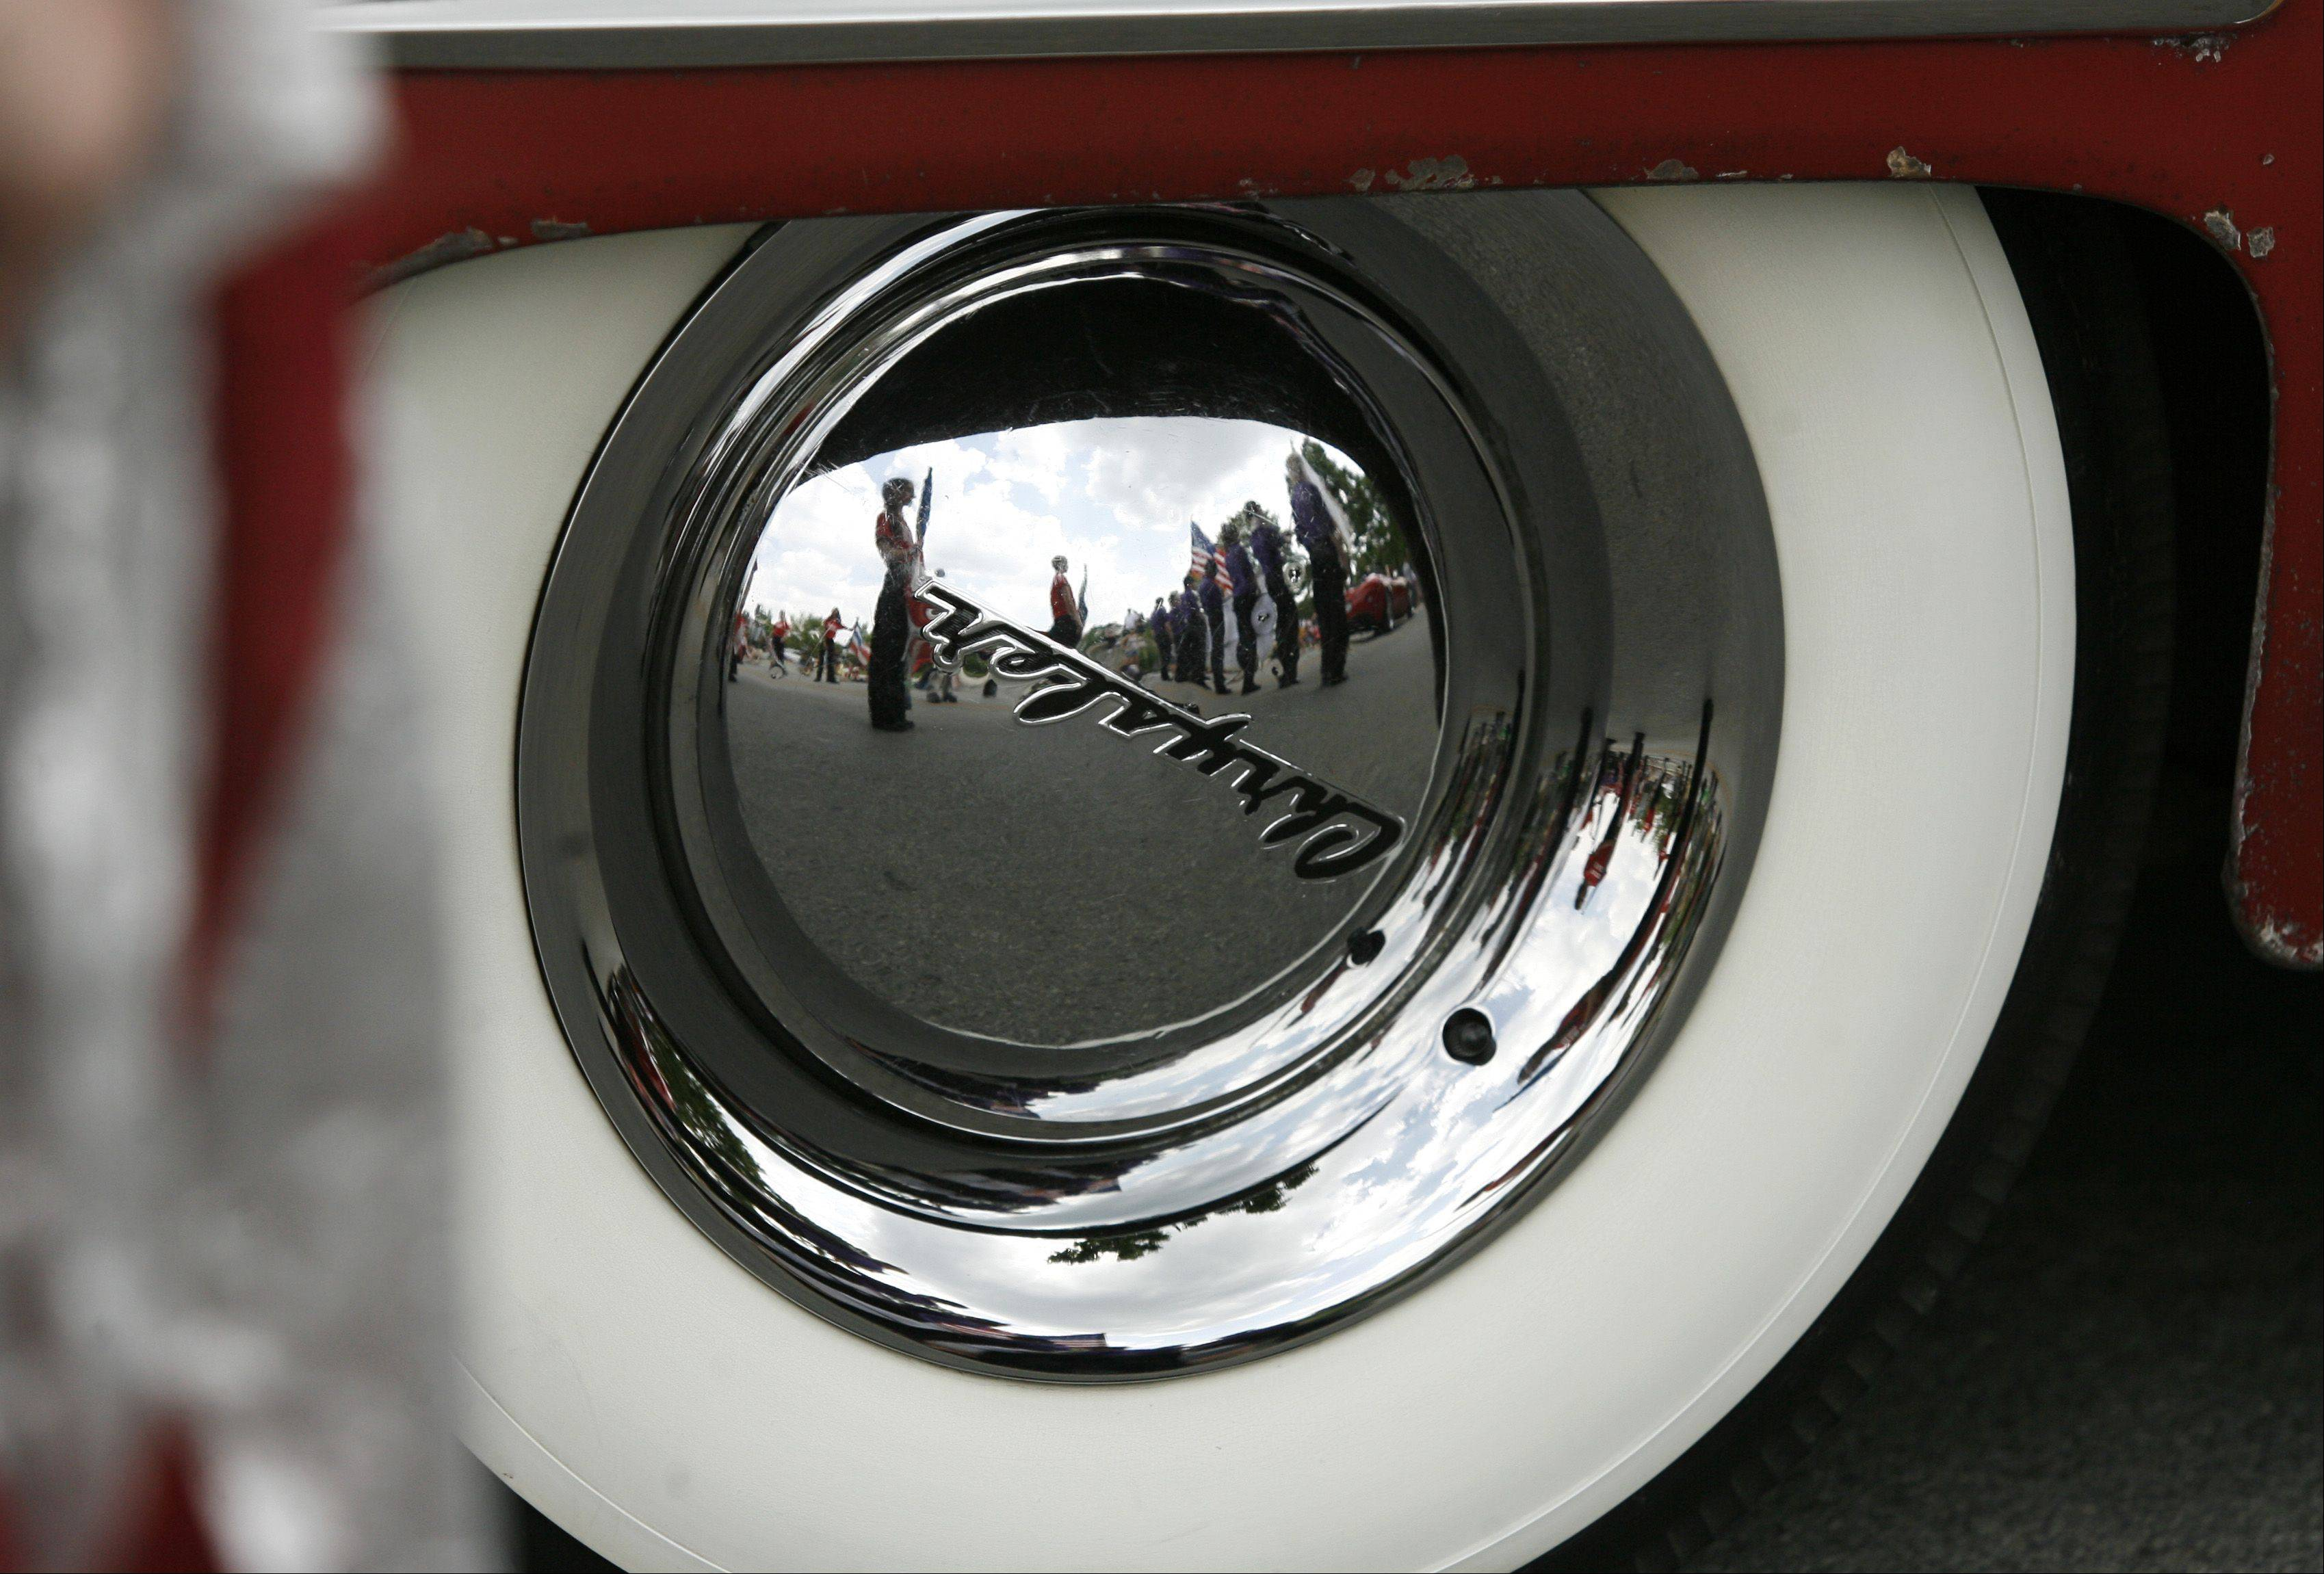 The chrome is thick on the wheels of this 1946 Chevrolet Town and Country, during the Naperville Memorial Day parade.